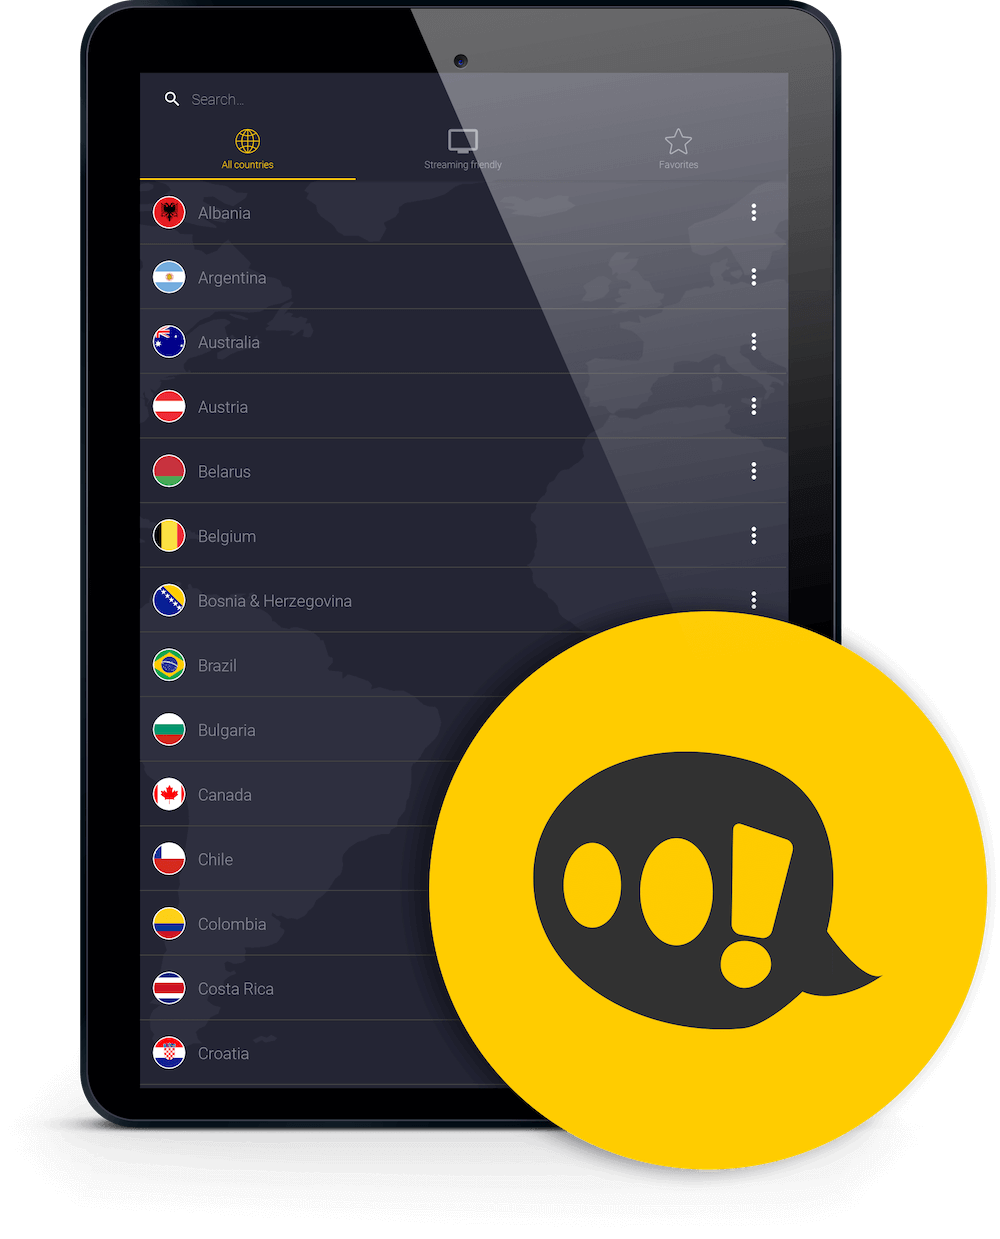 CyberGhost VPN 7 0 for Android